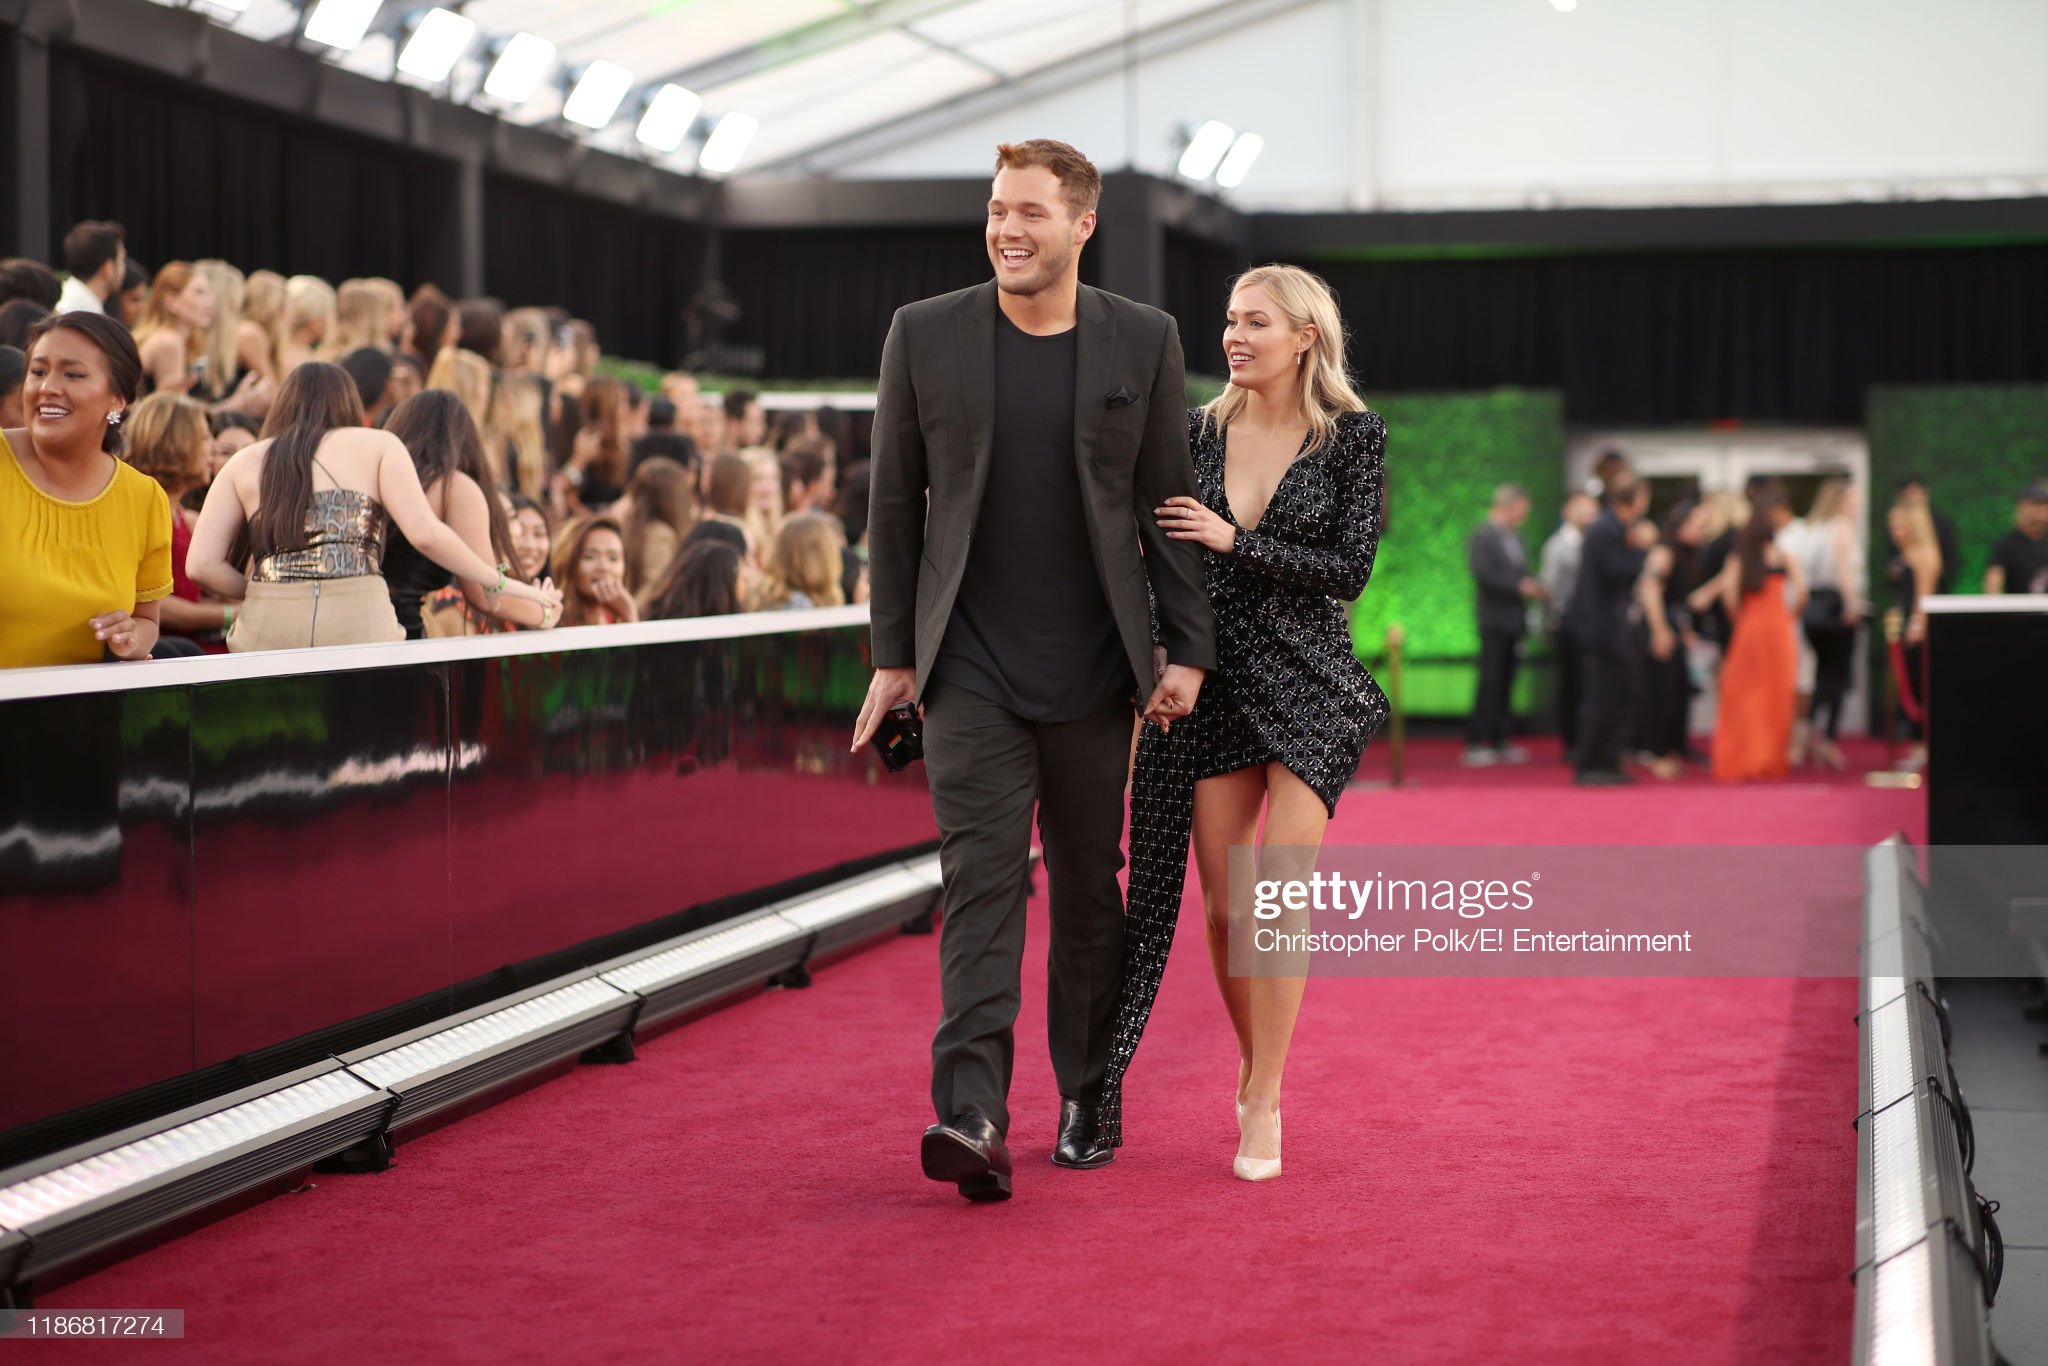 Colton Underwood & Cassie Randolph - Bachelor 23 - Discussion - Page 14 Pictured-colton-underwood-and-cassie-randolph-arrive-to-the-2019-e-picture-id1186817274?s=2048x2048